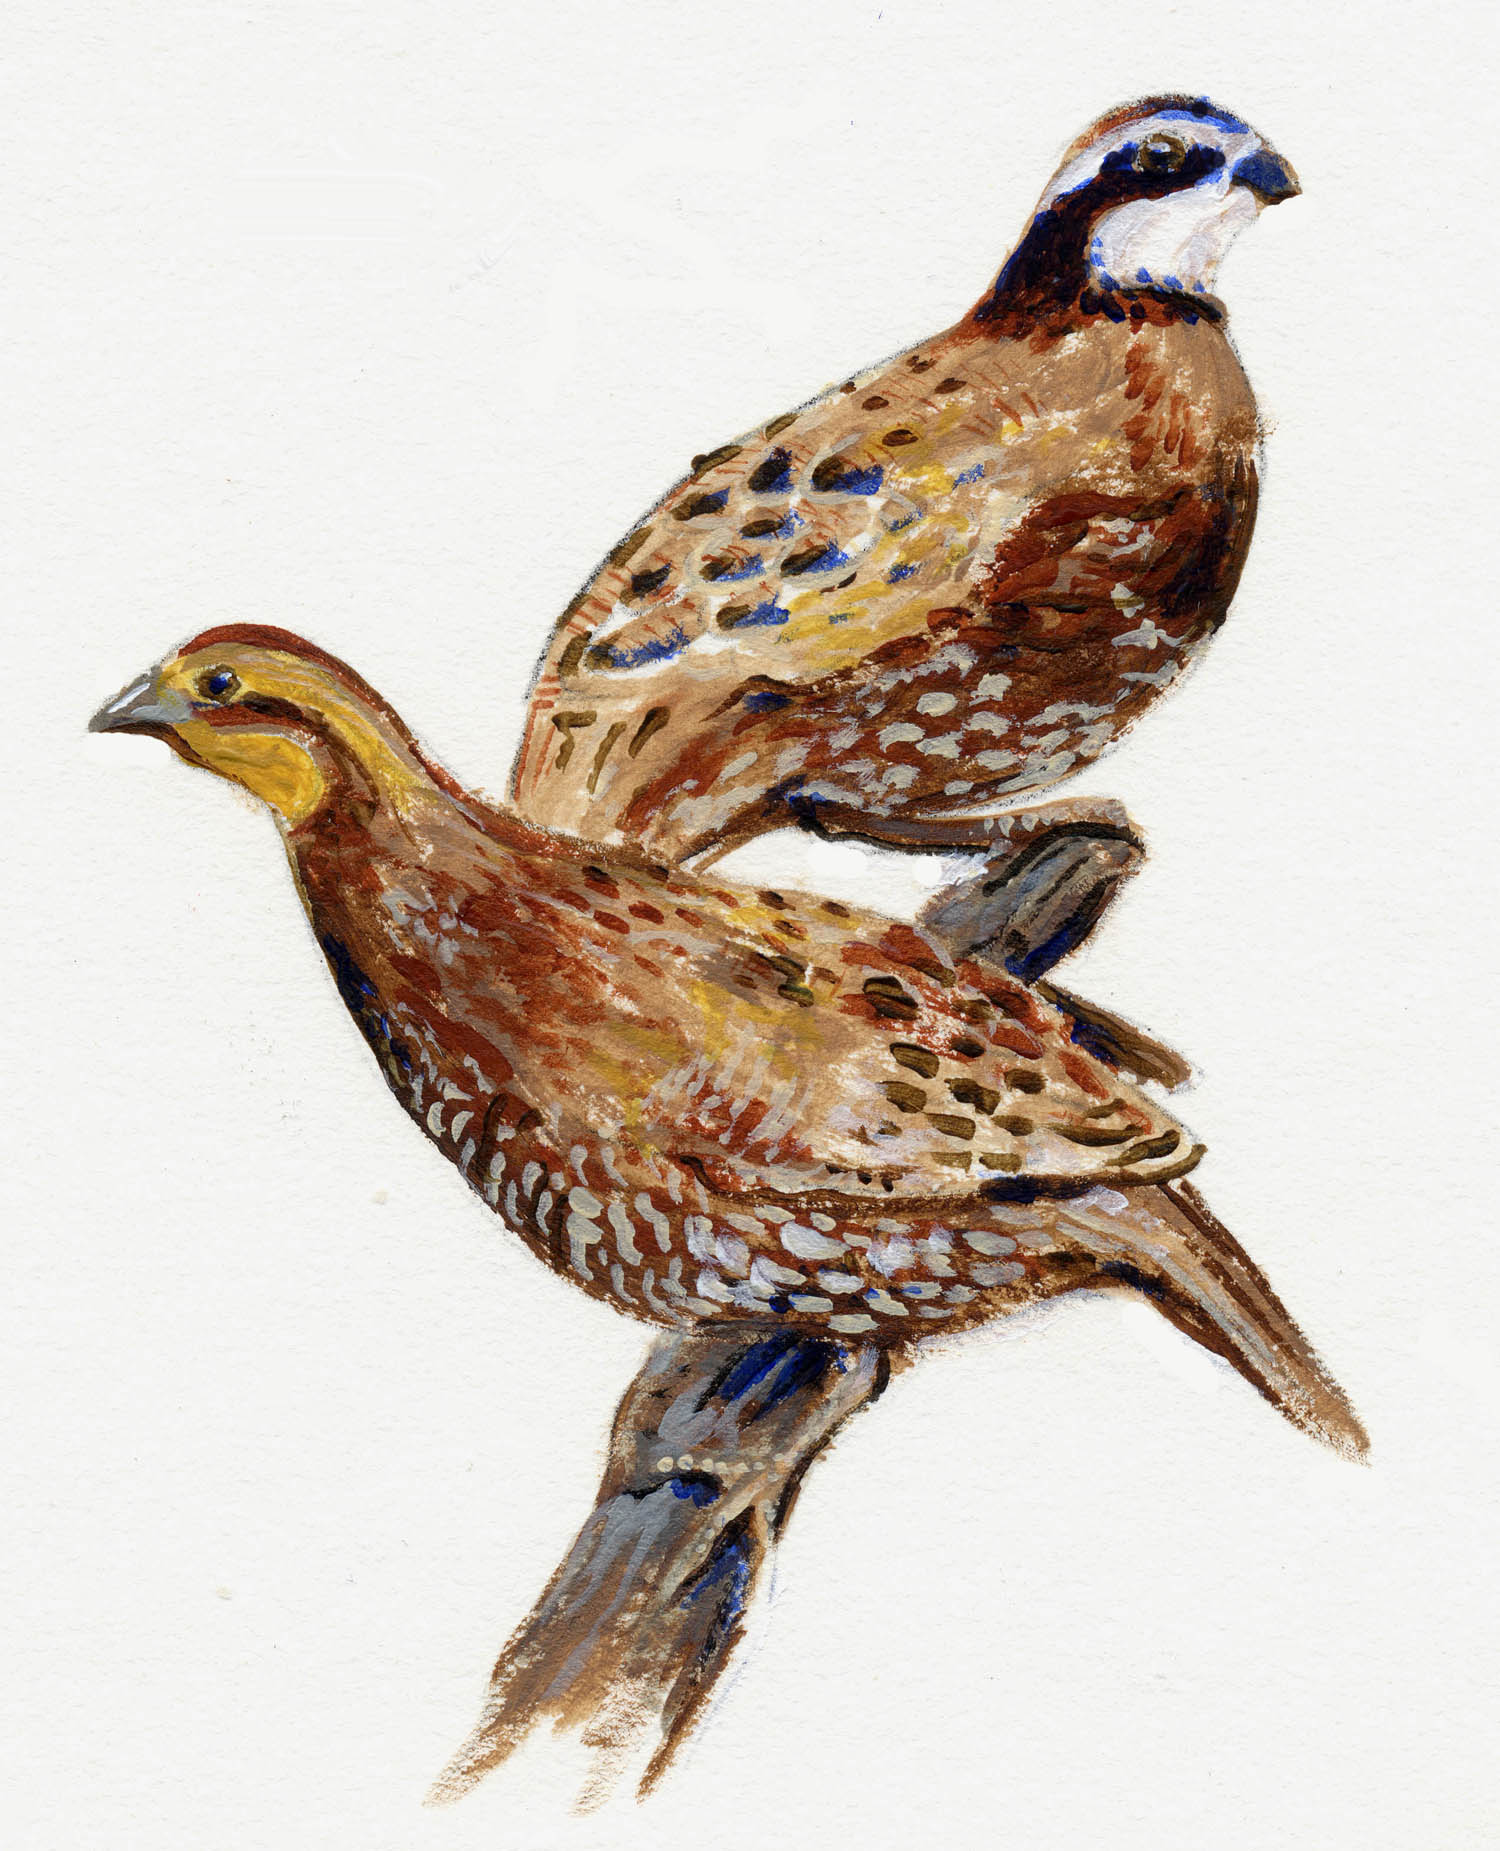 Quail illustration shows two painted birds